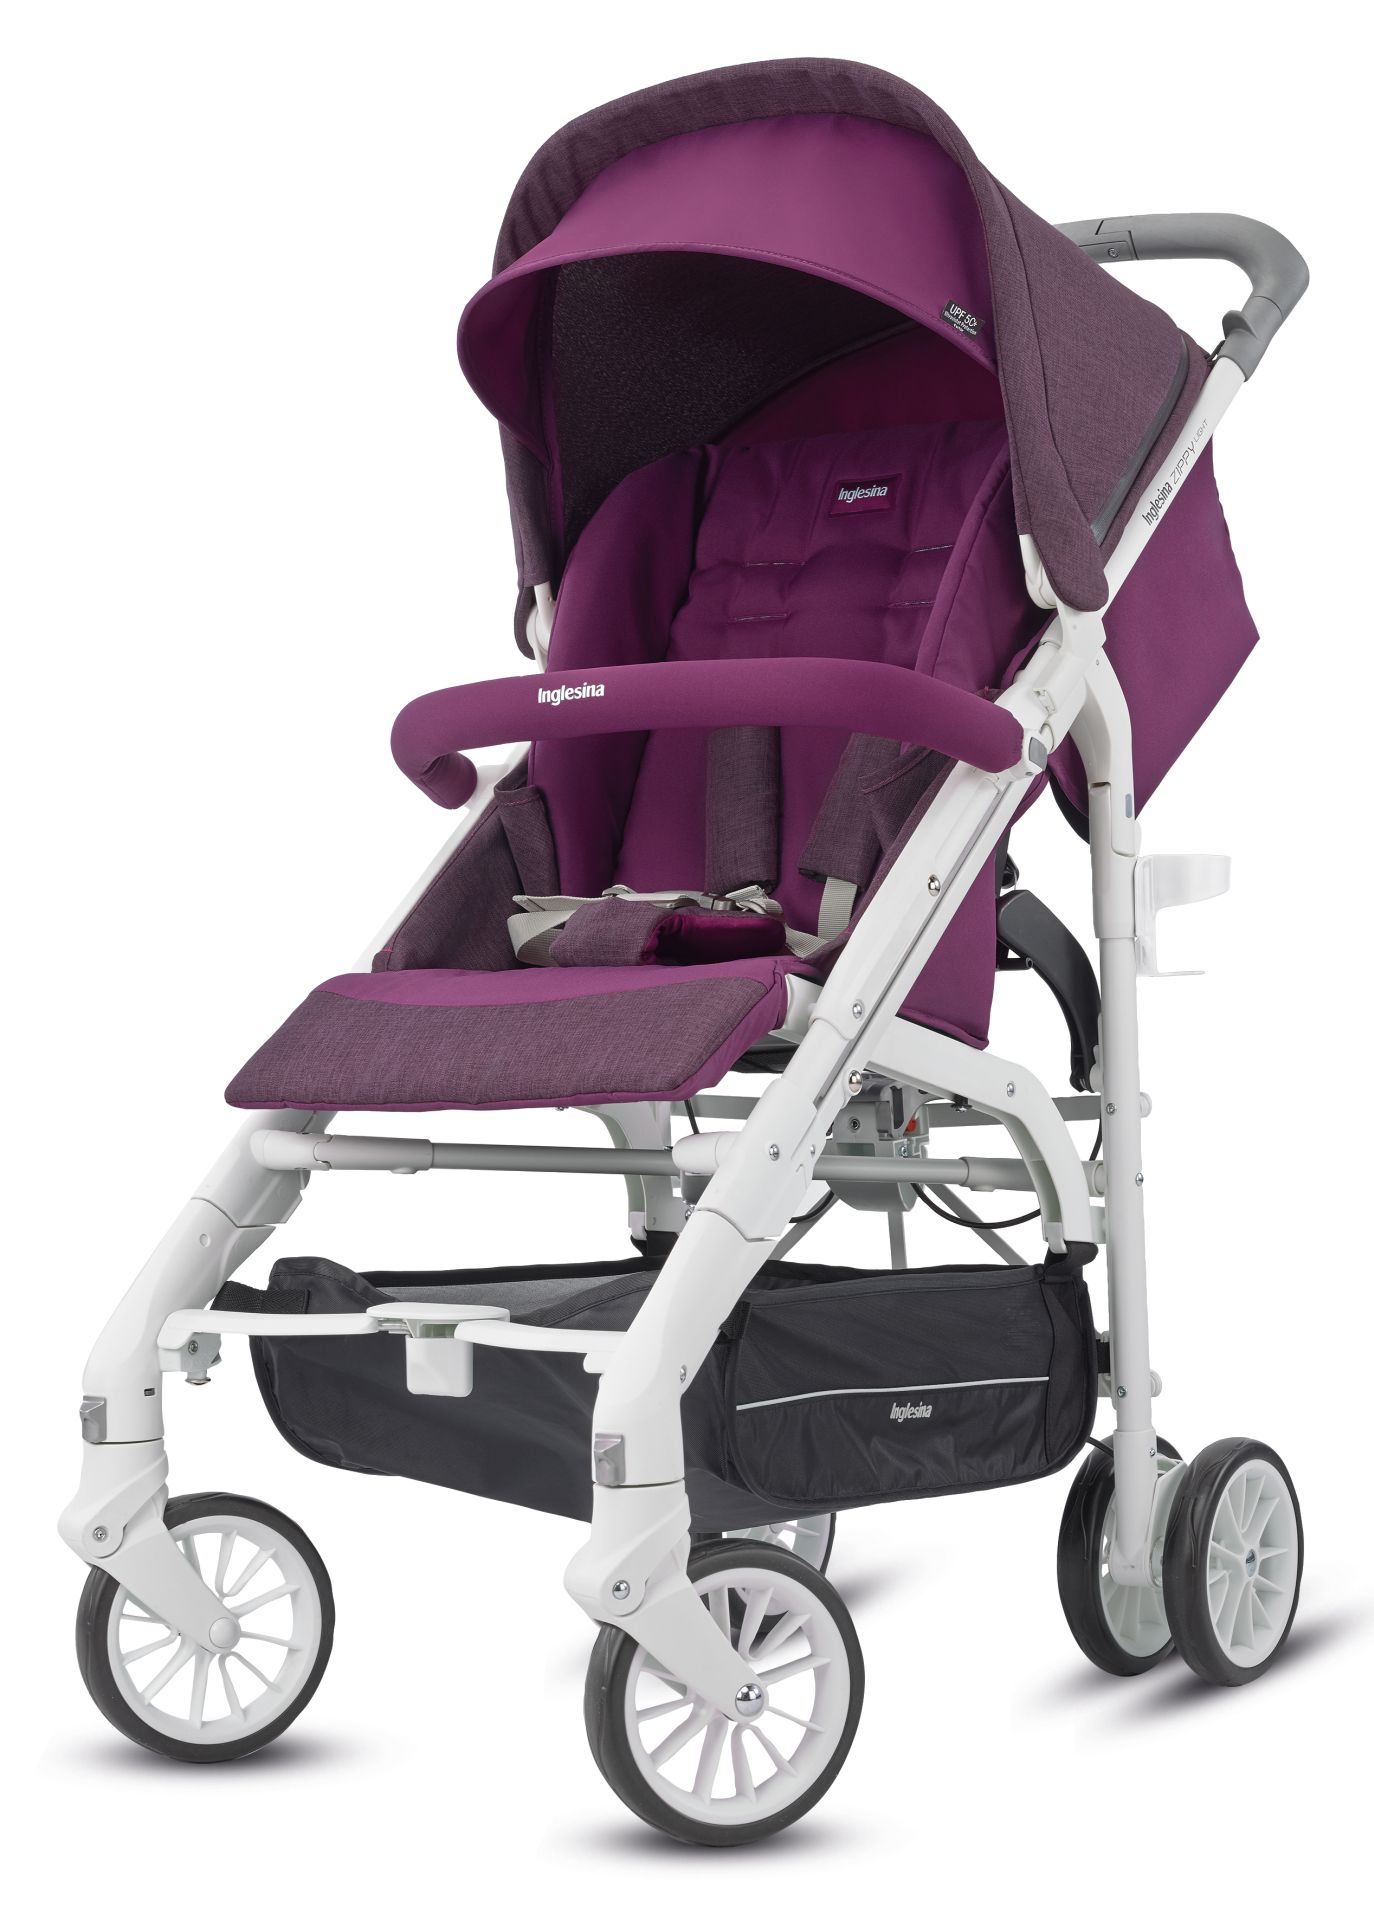 Silla De Paseo Be Cool Light Silla De Paseo Zippy Light Inglesina Comprar En Kidsroom